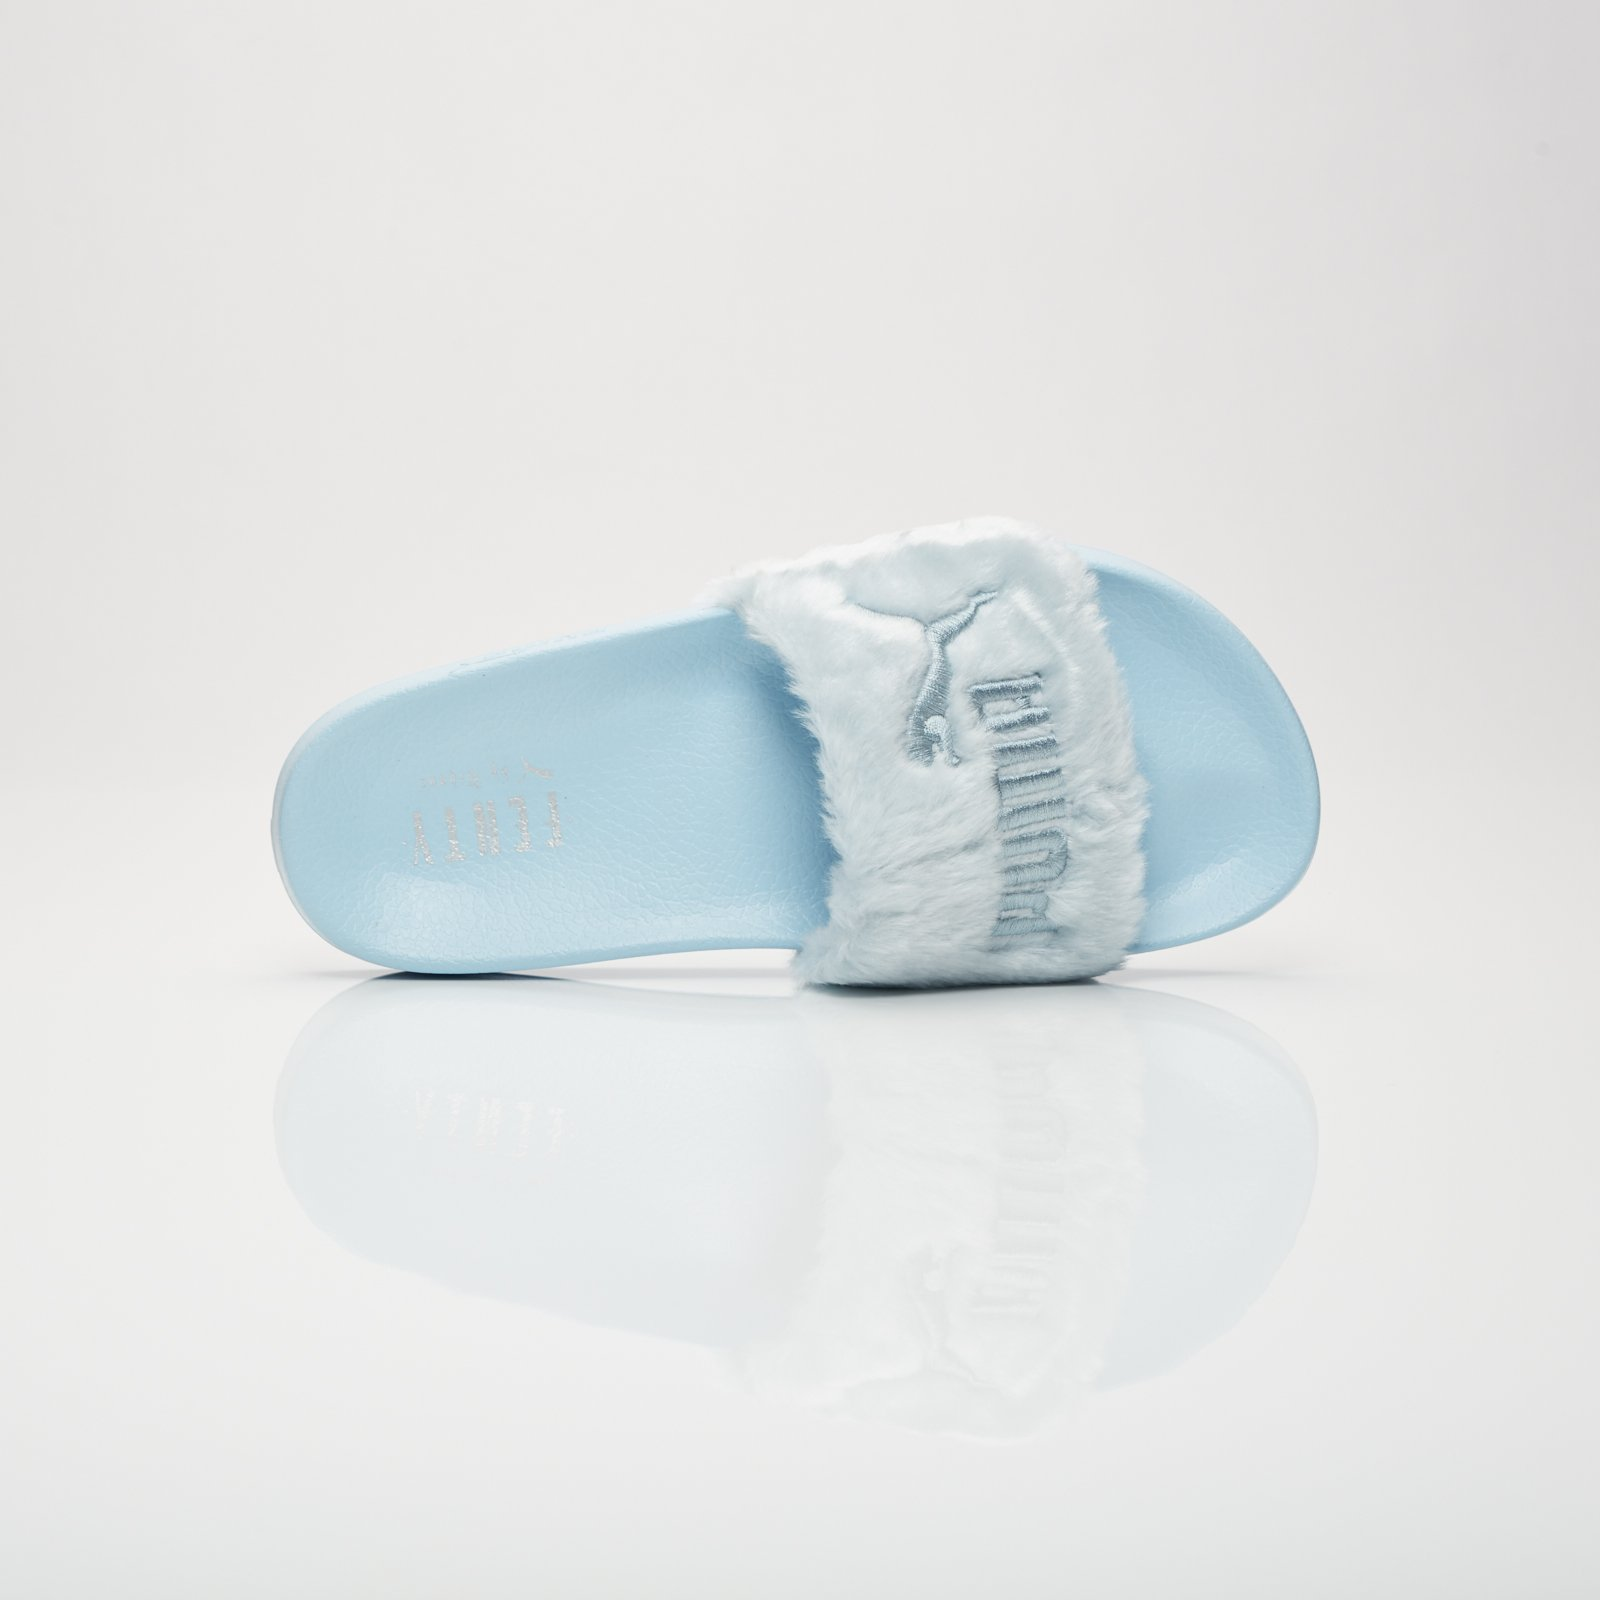 1db057de7902 Puma Fur Slides - 365772-03 - Sneakersnstuff